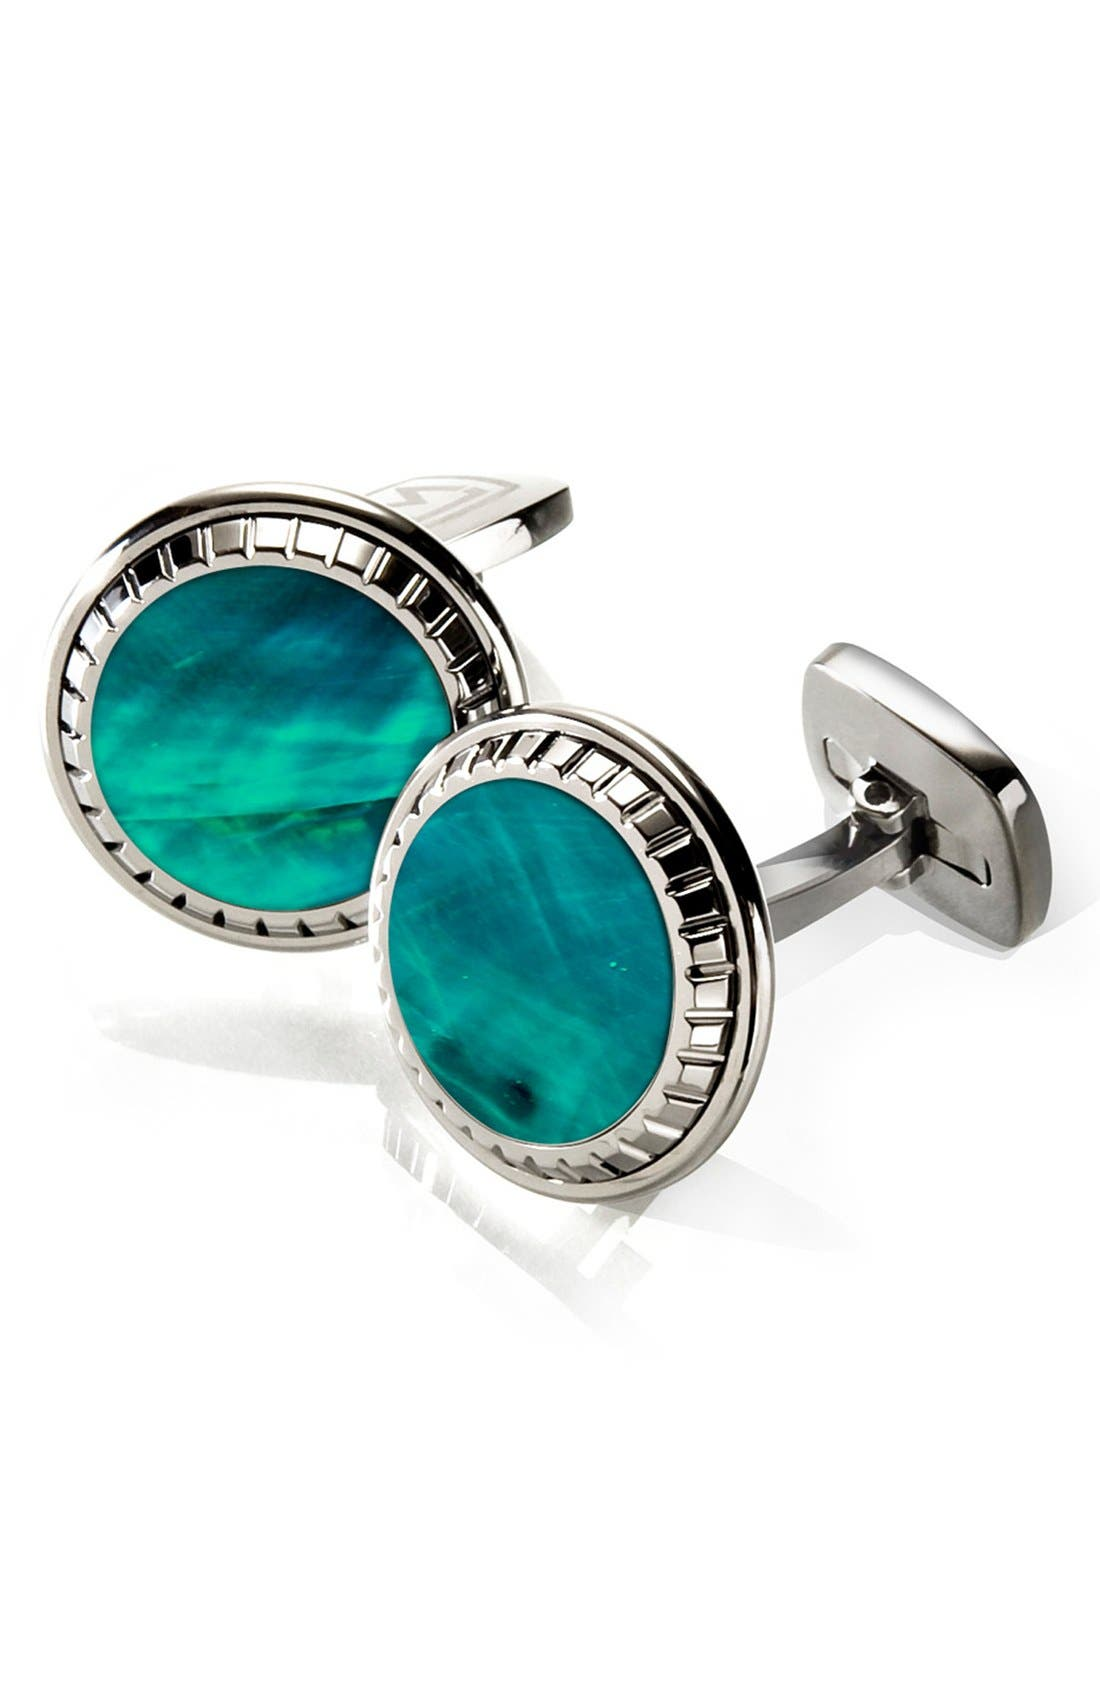 Abalone Cuff Links,                         Main,                         color, Stainless Steel/ Teal